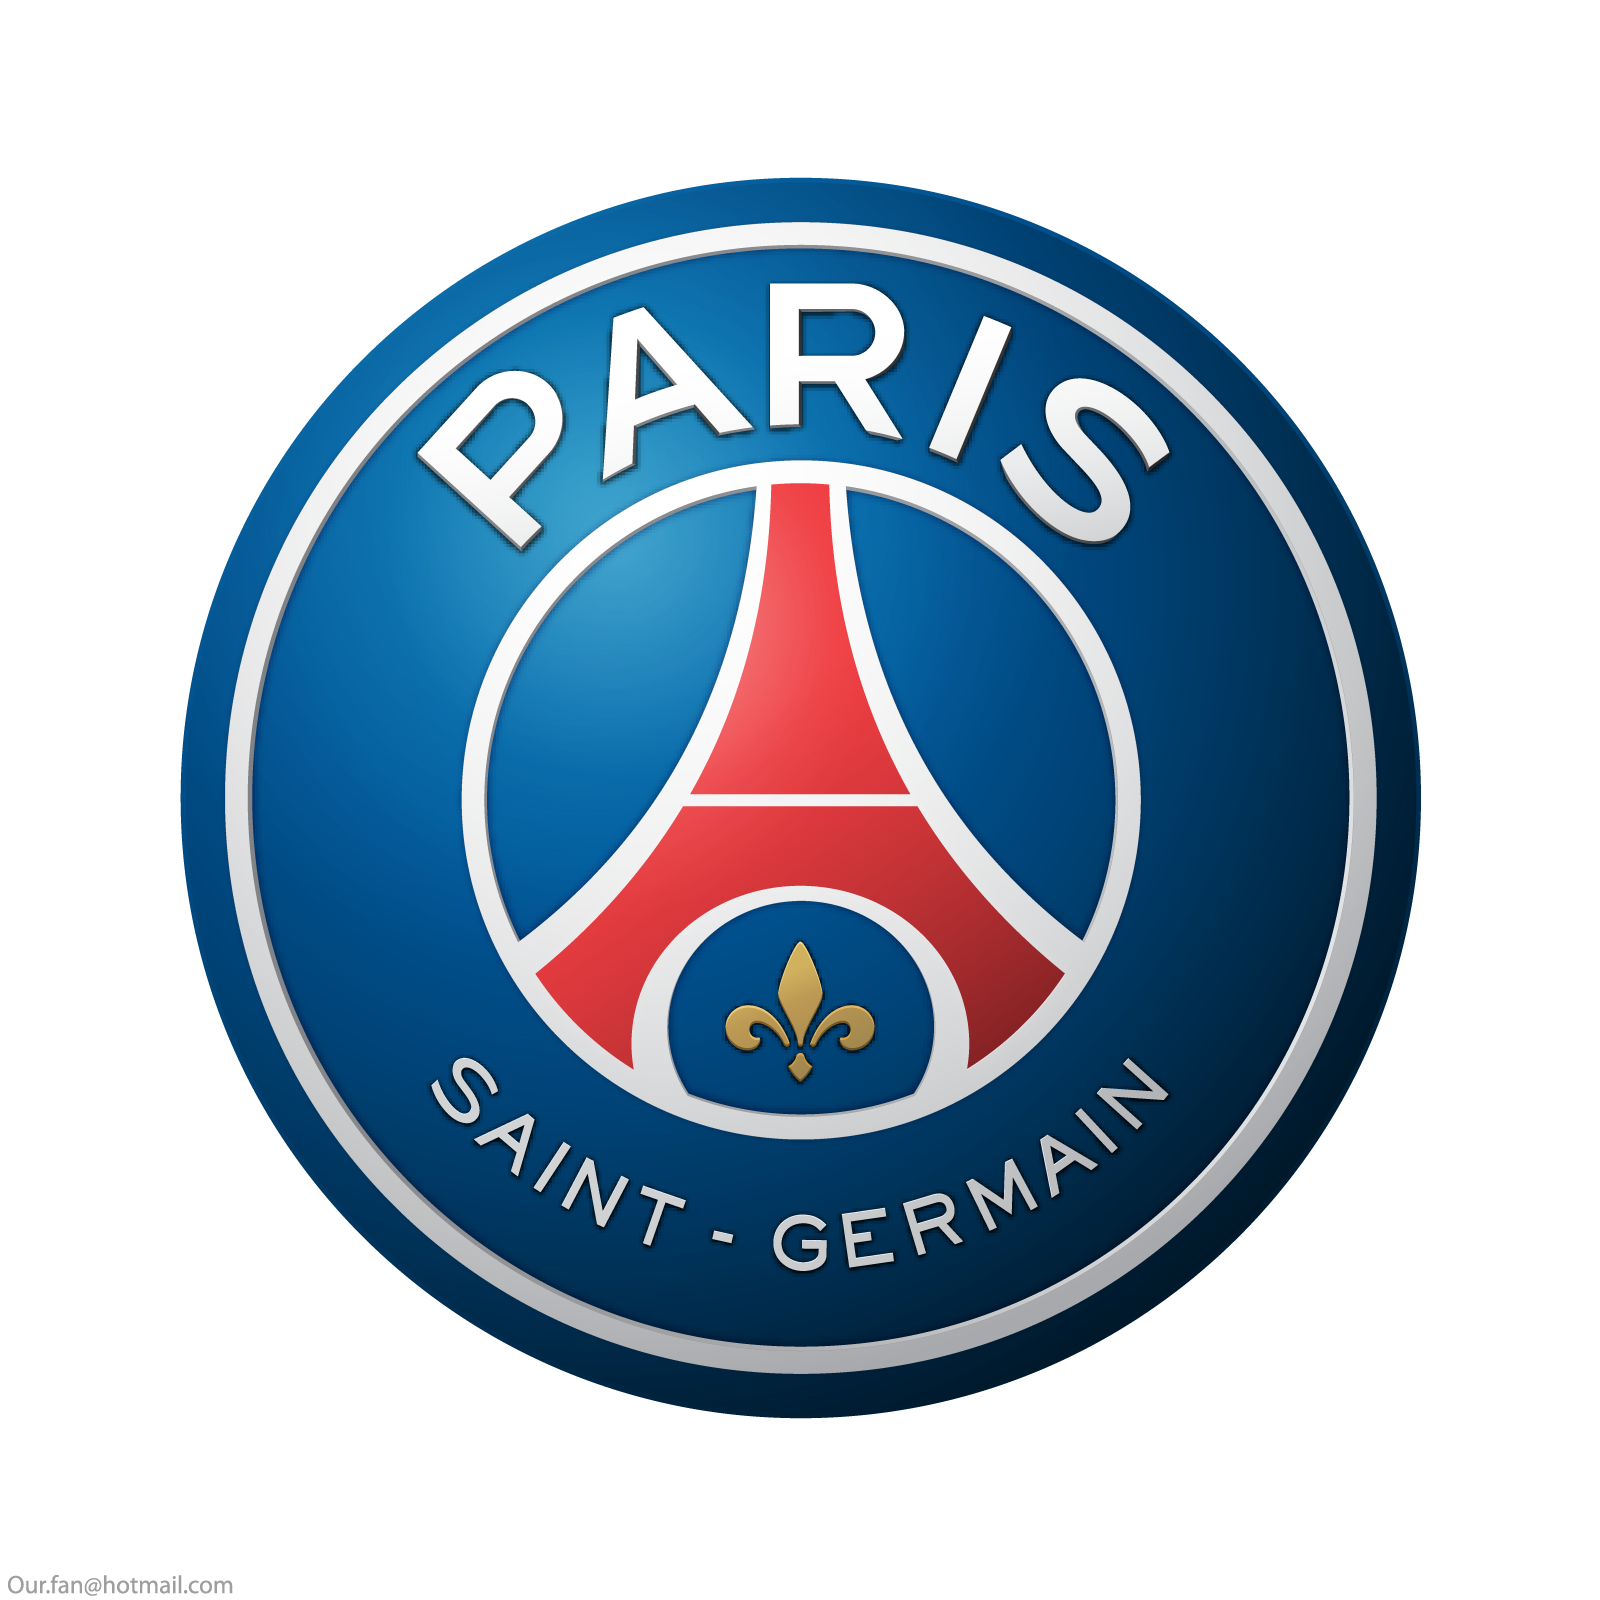 psg logo escudo paris saint germain 2 - PSG Logo - Escudo - Paris Saint-Germain Logo - Escudo